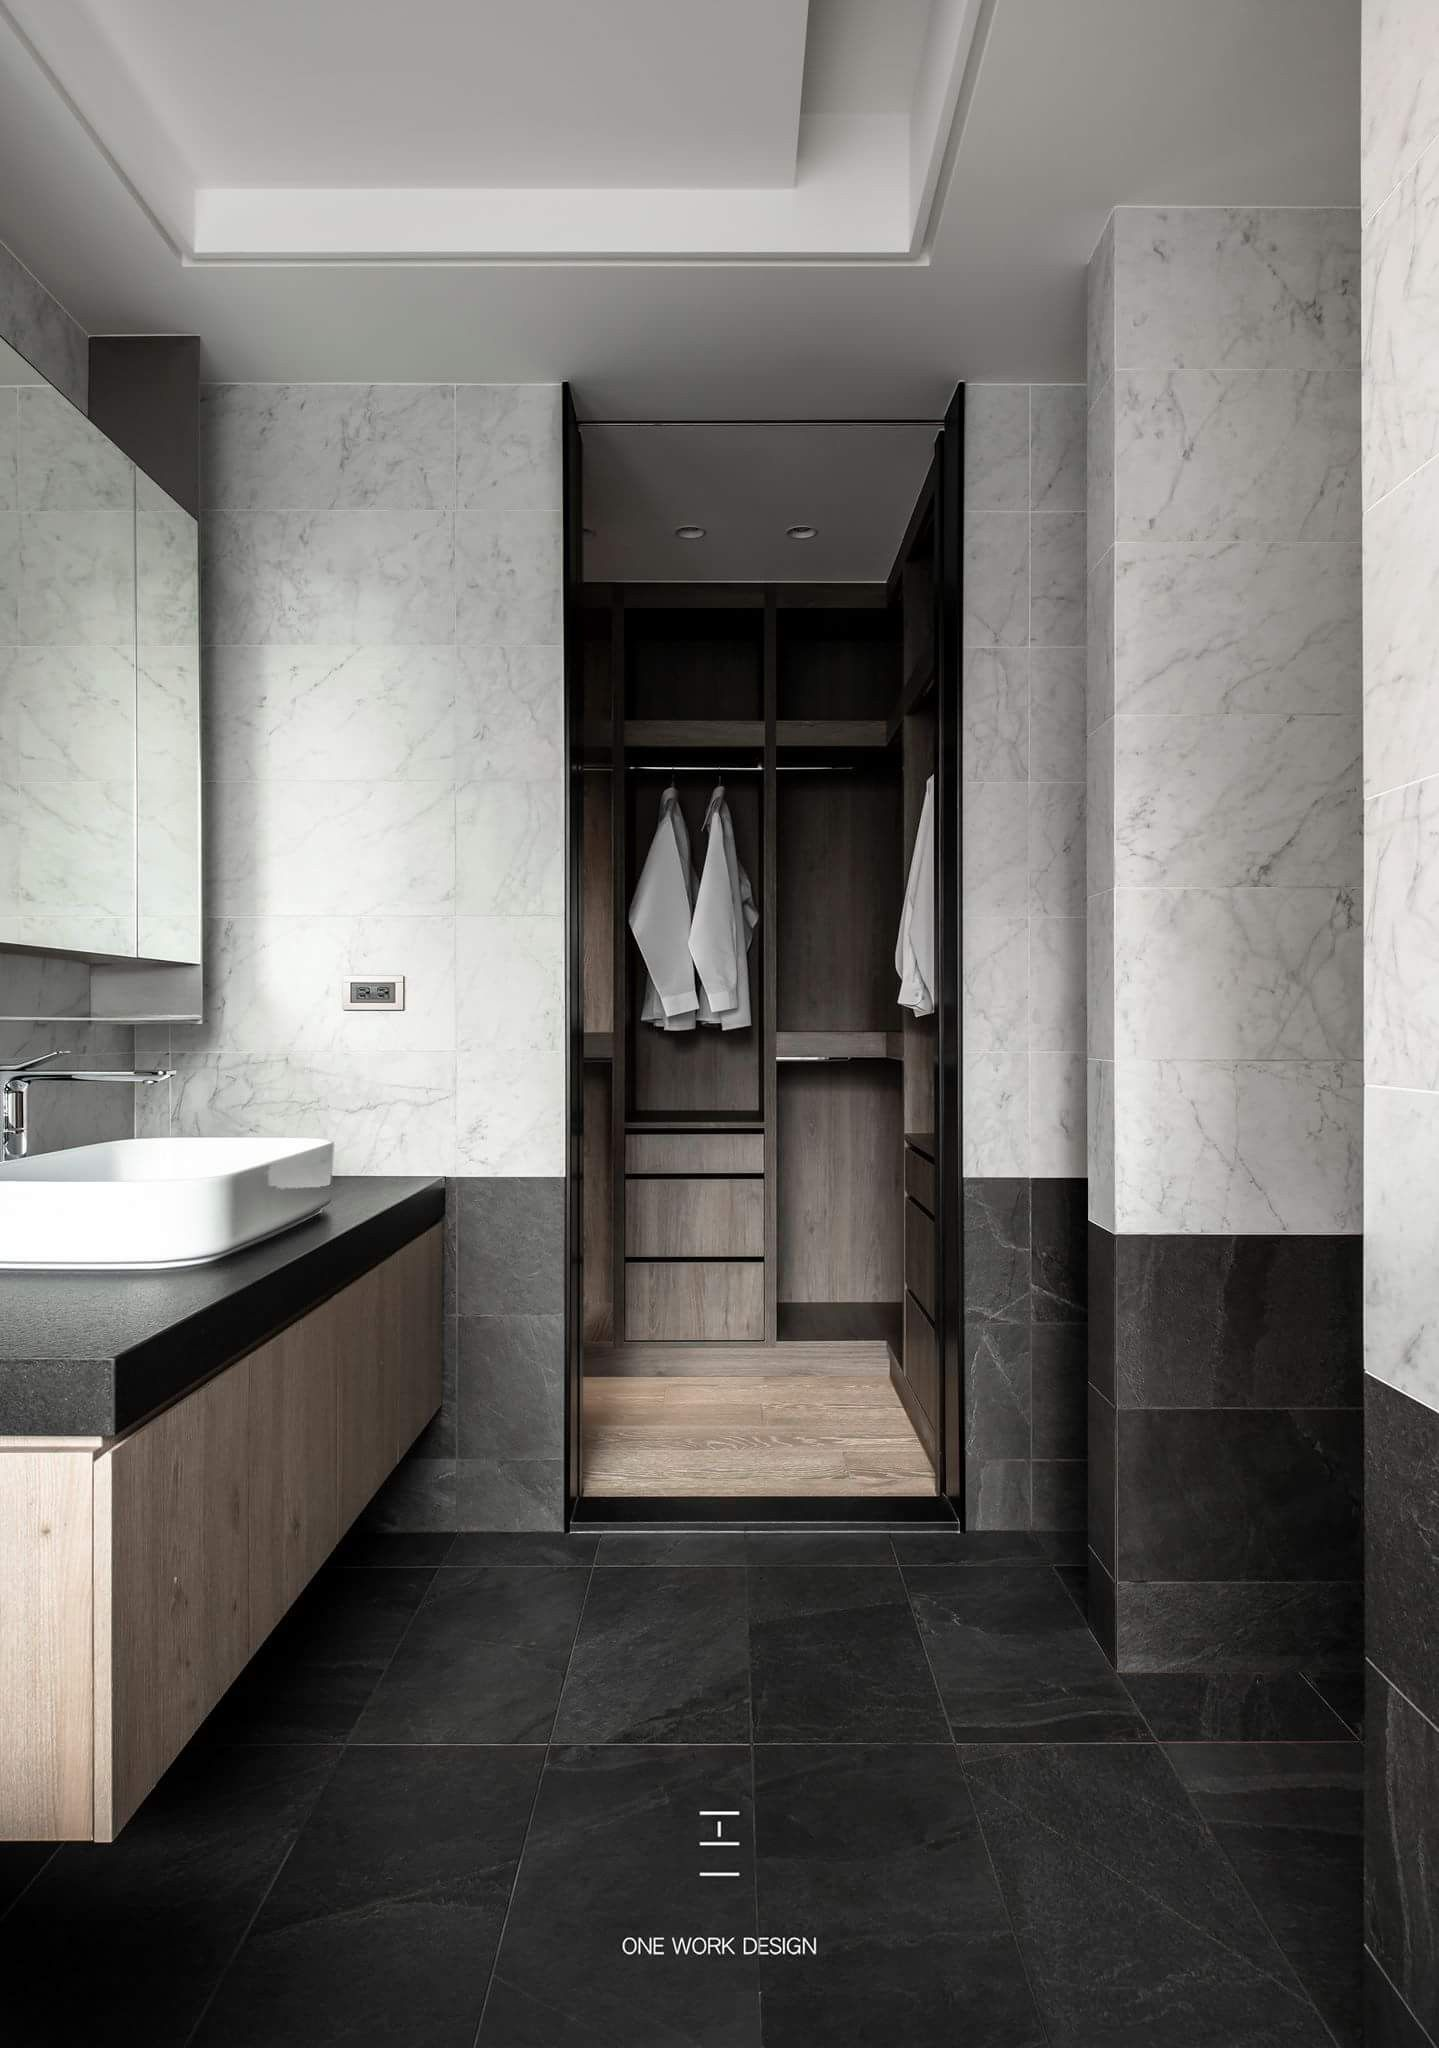 Pin by Eris Chong on 工一设计 (吉光片羽) | Contemporary bathrooms ...